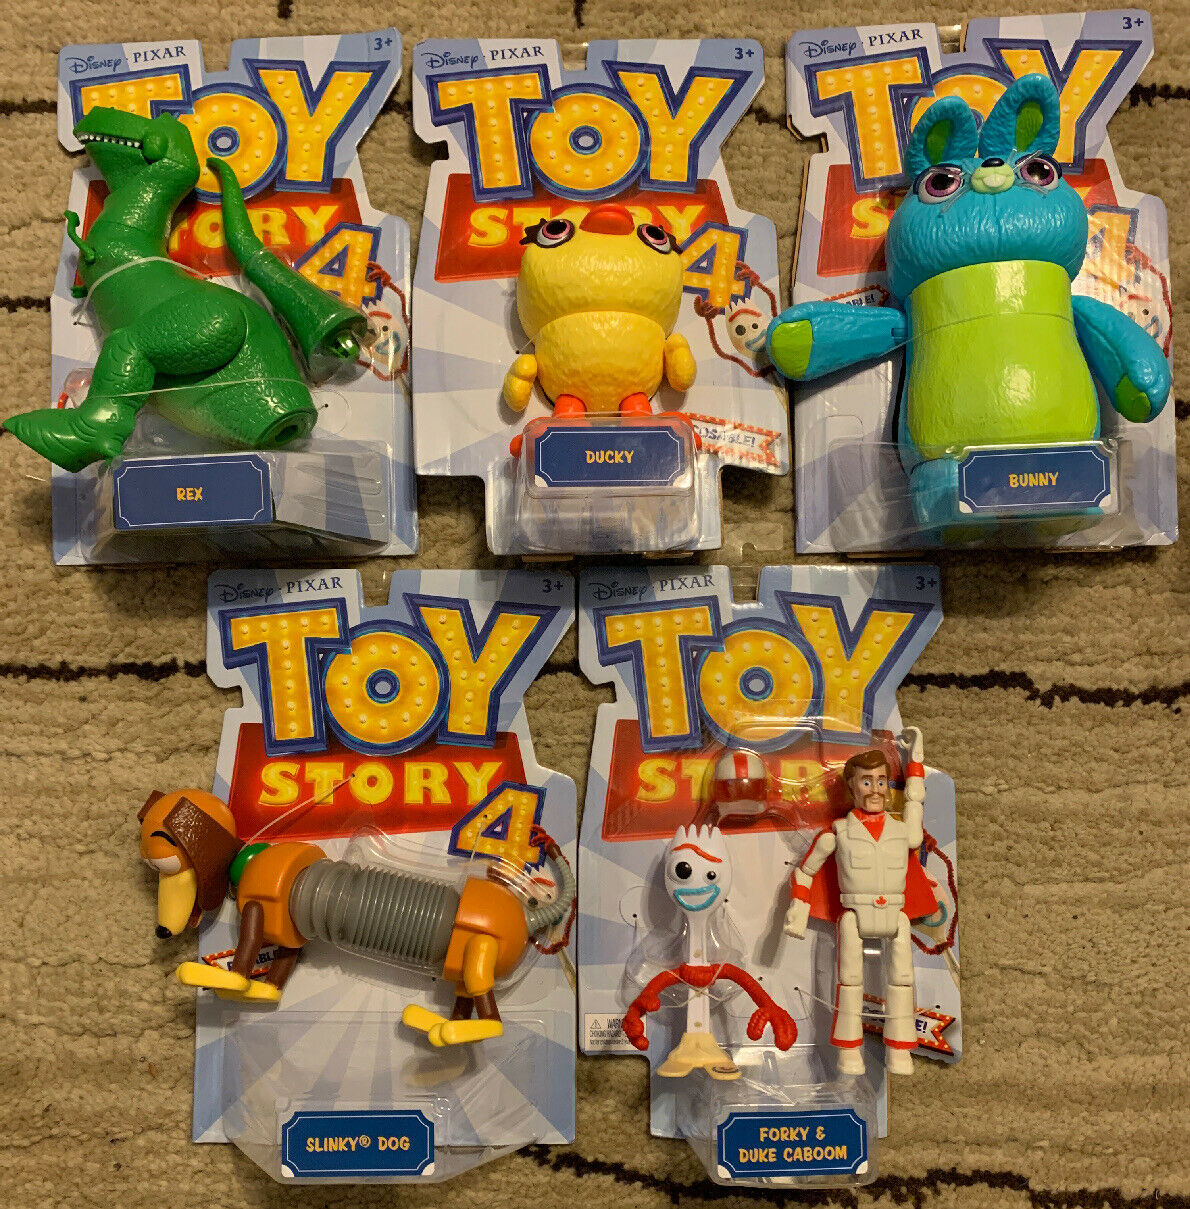 Toy Story 4 Posable Figures Lot Rex Ducky Bunny Slinky Dog Forky & Duke Caboom